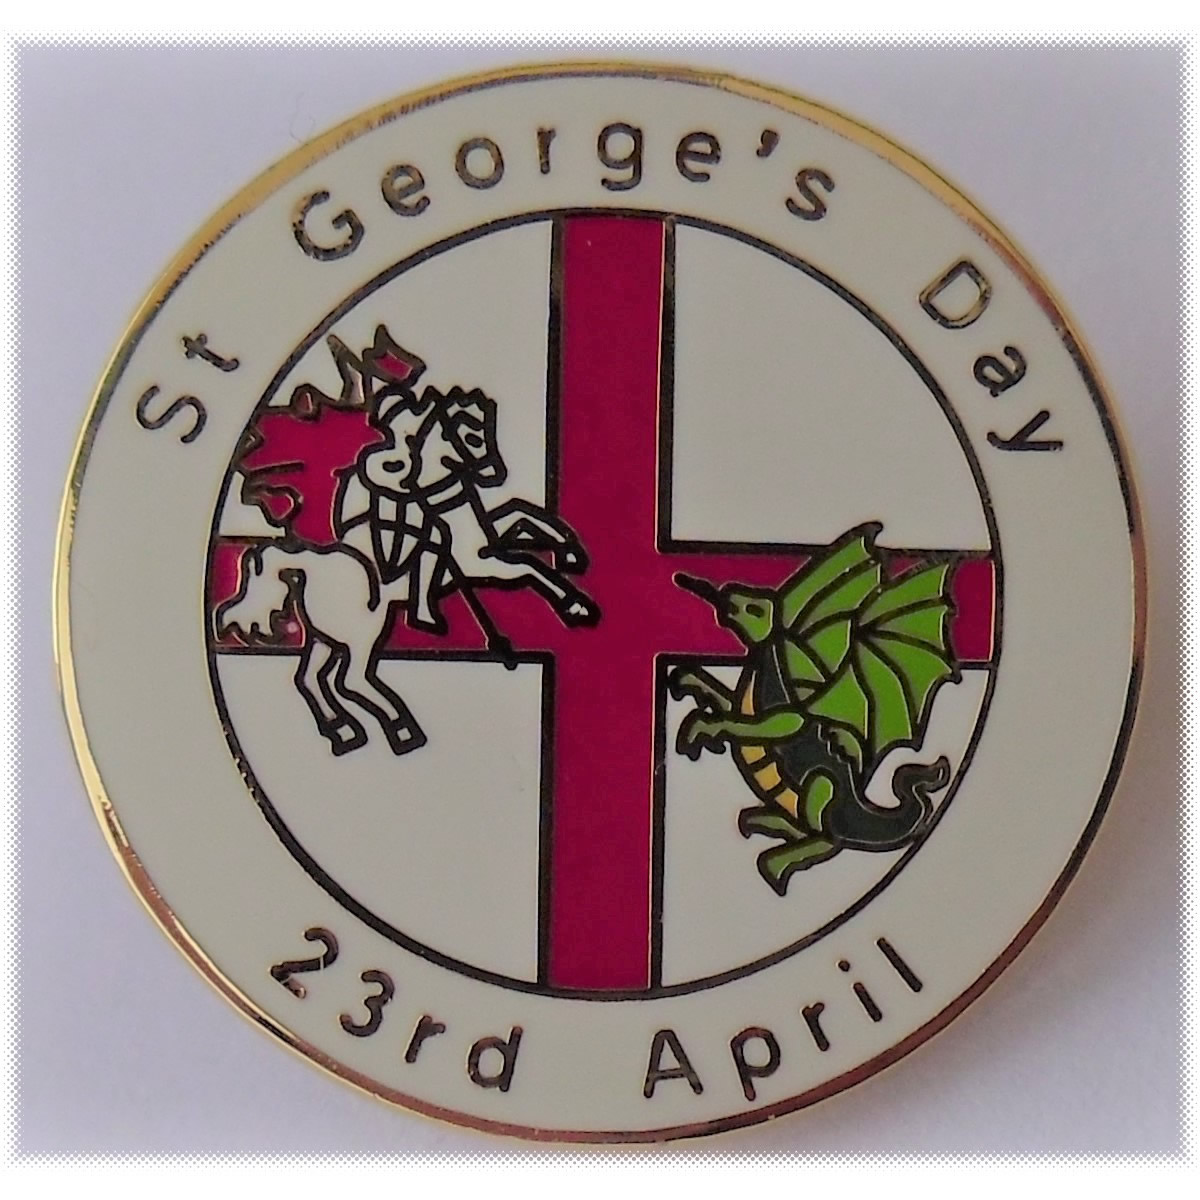 Saint George's day pin badge